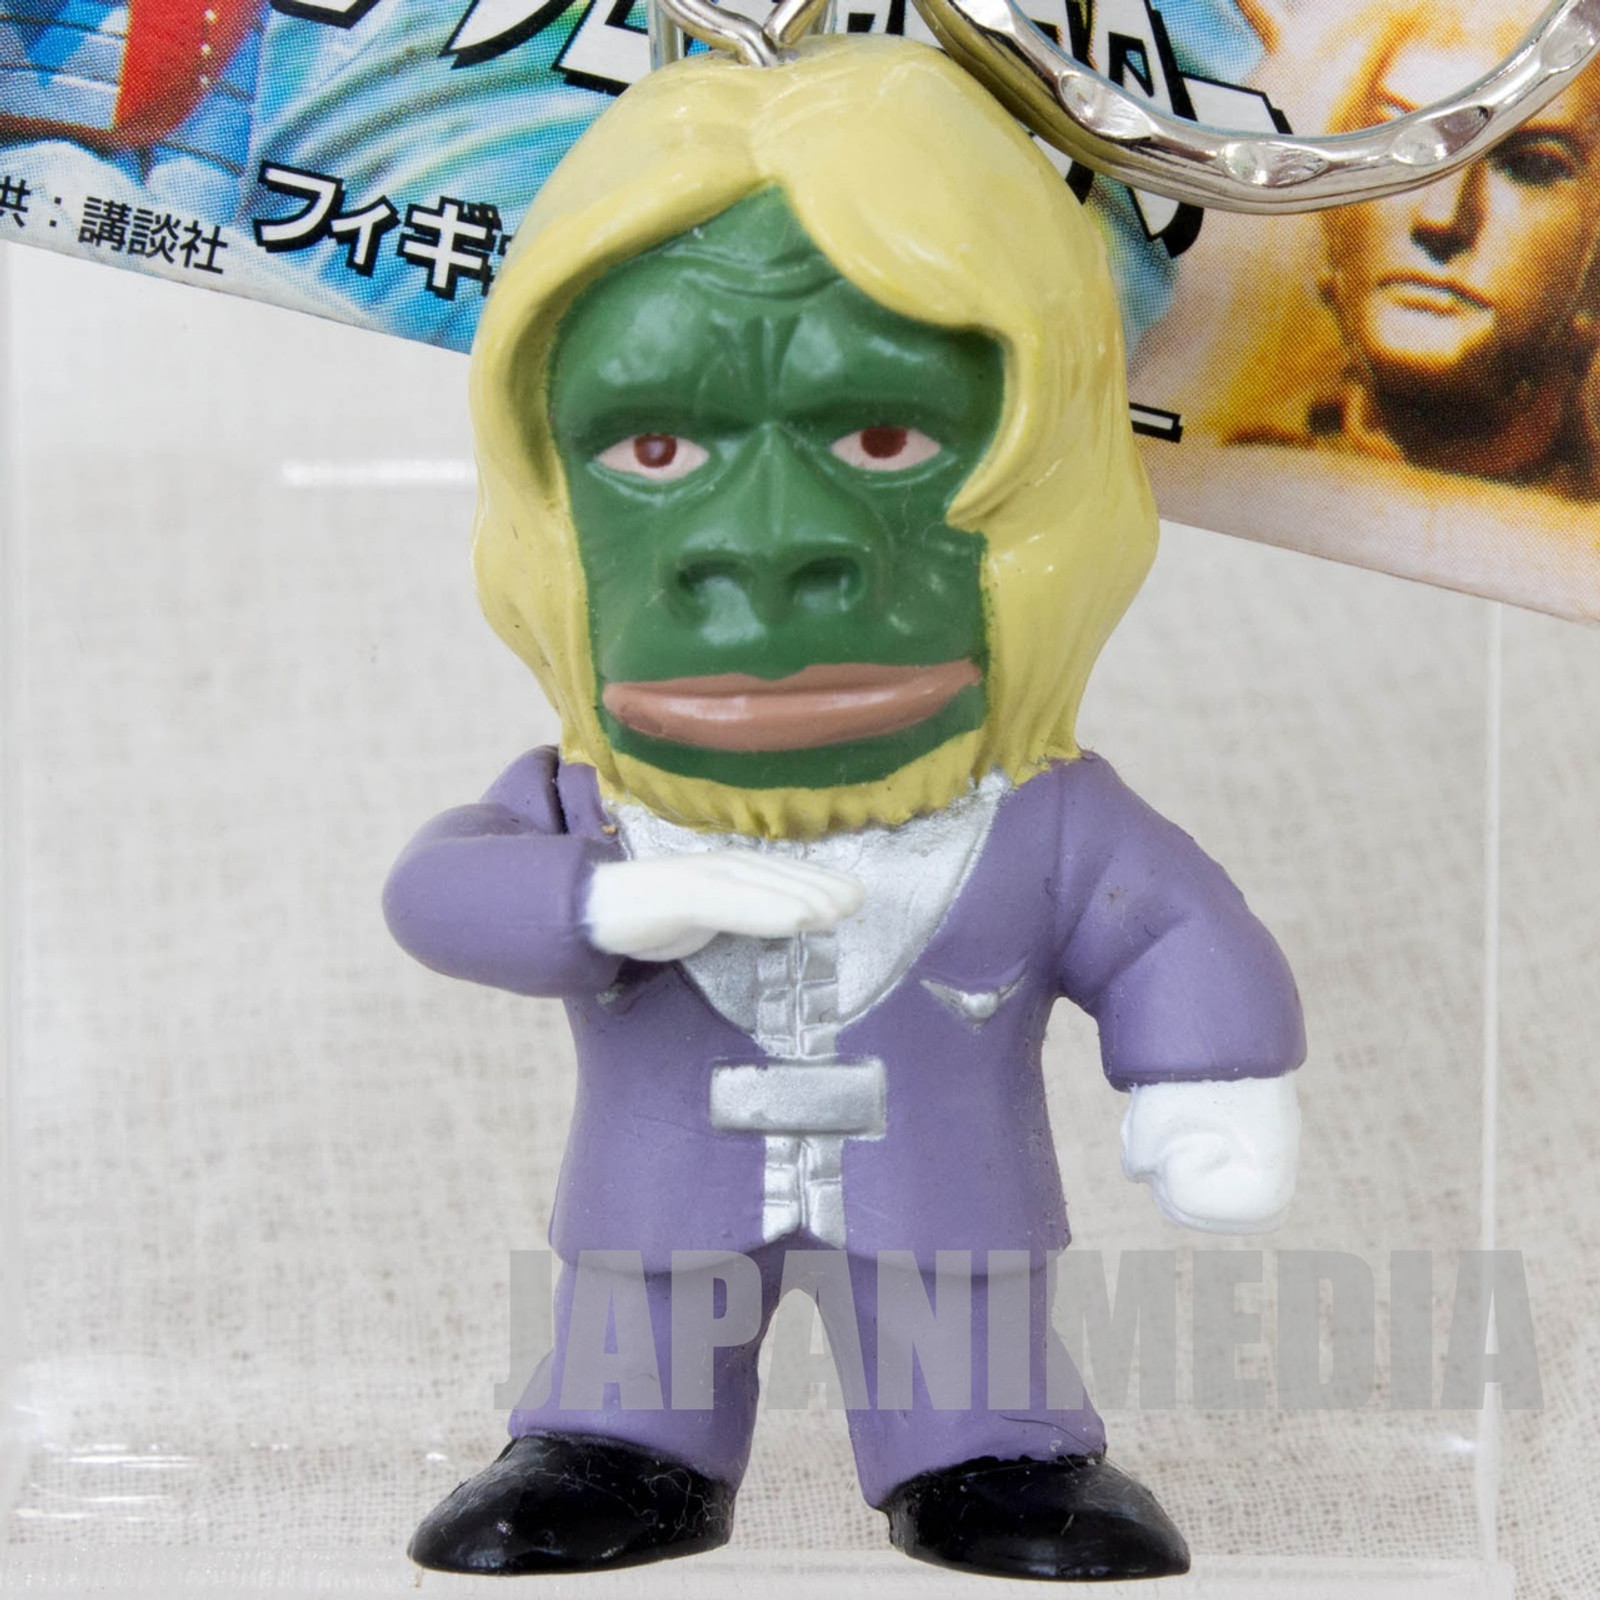 Spectreman Space Apeman Gori Figure Key Chain P Production JAPAN ANIME TOKUSATSU